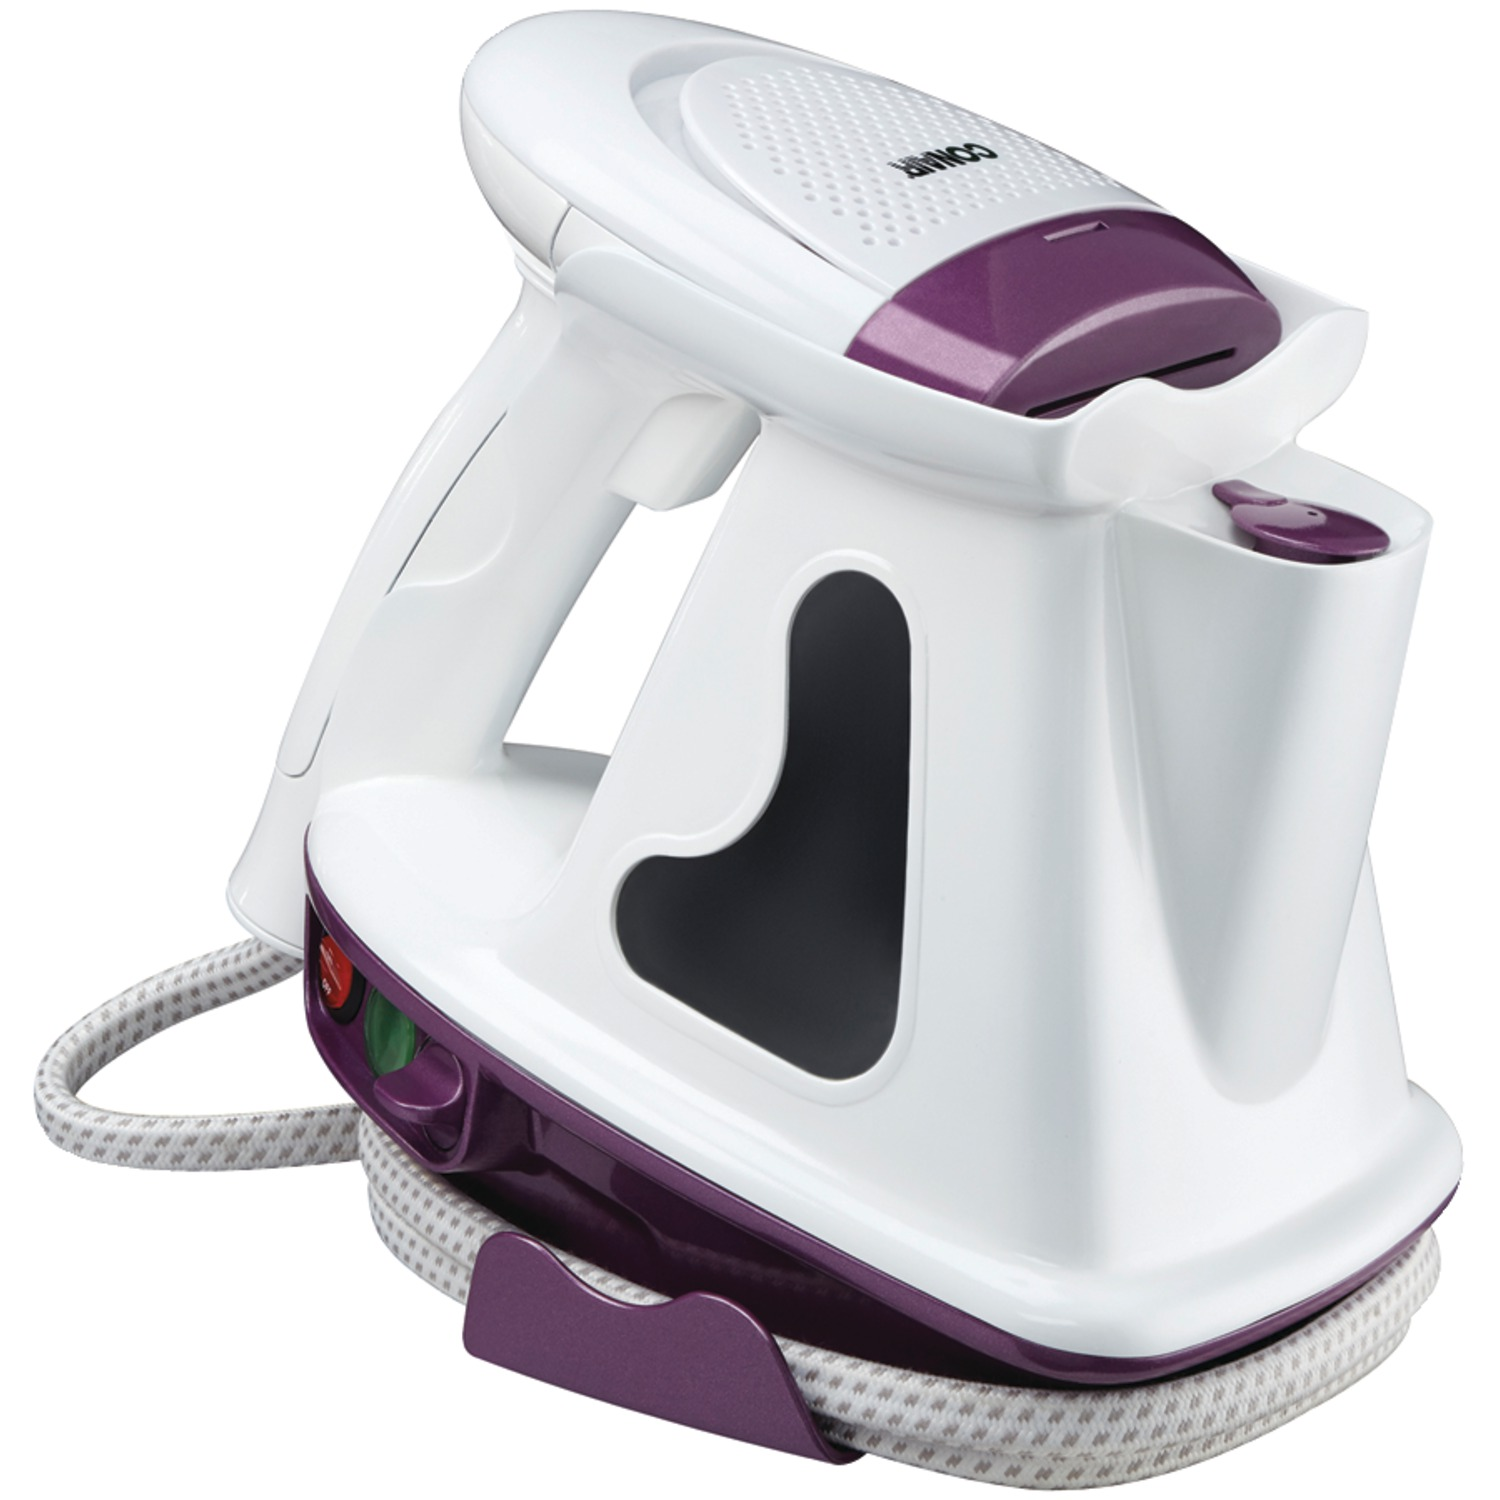 Portable Table Steamer Nokia Universal Portable Usb Charger Dc 16 Portable Charger Virgin Atlantic Portable Kitchen Island Bench Perth: ExtremeSteam(R) Portable Tabletop Fabric Steamer